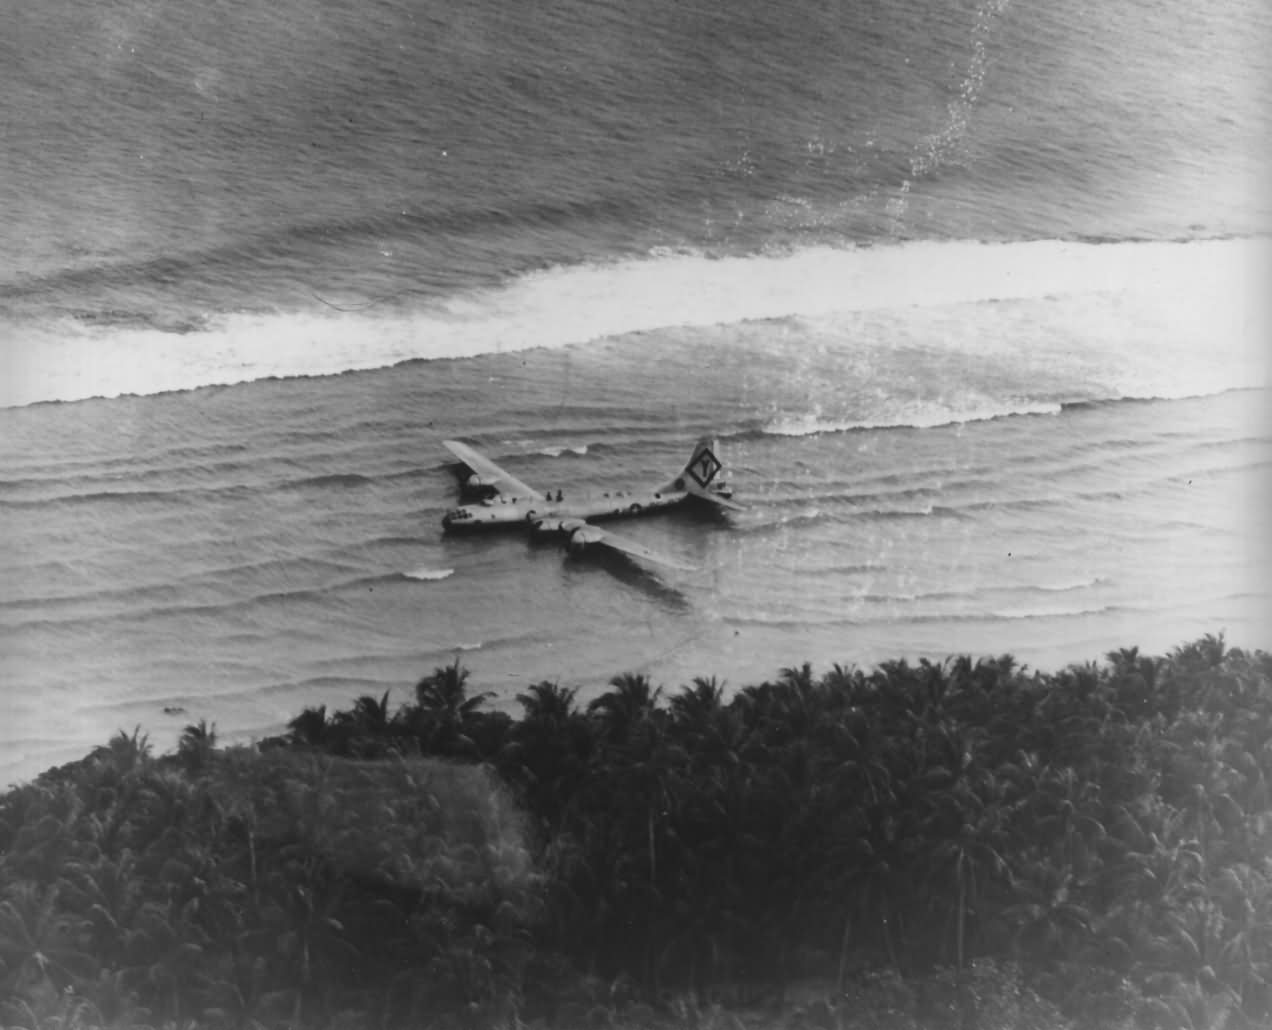 B-29 Superfortress 501st Bomb Group Crashed on Beach Photograph